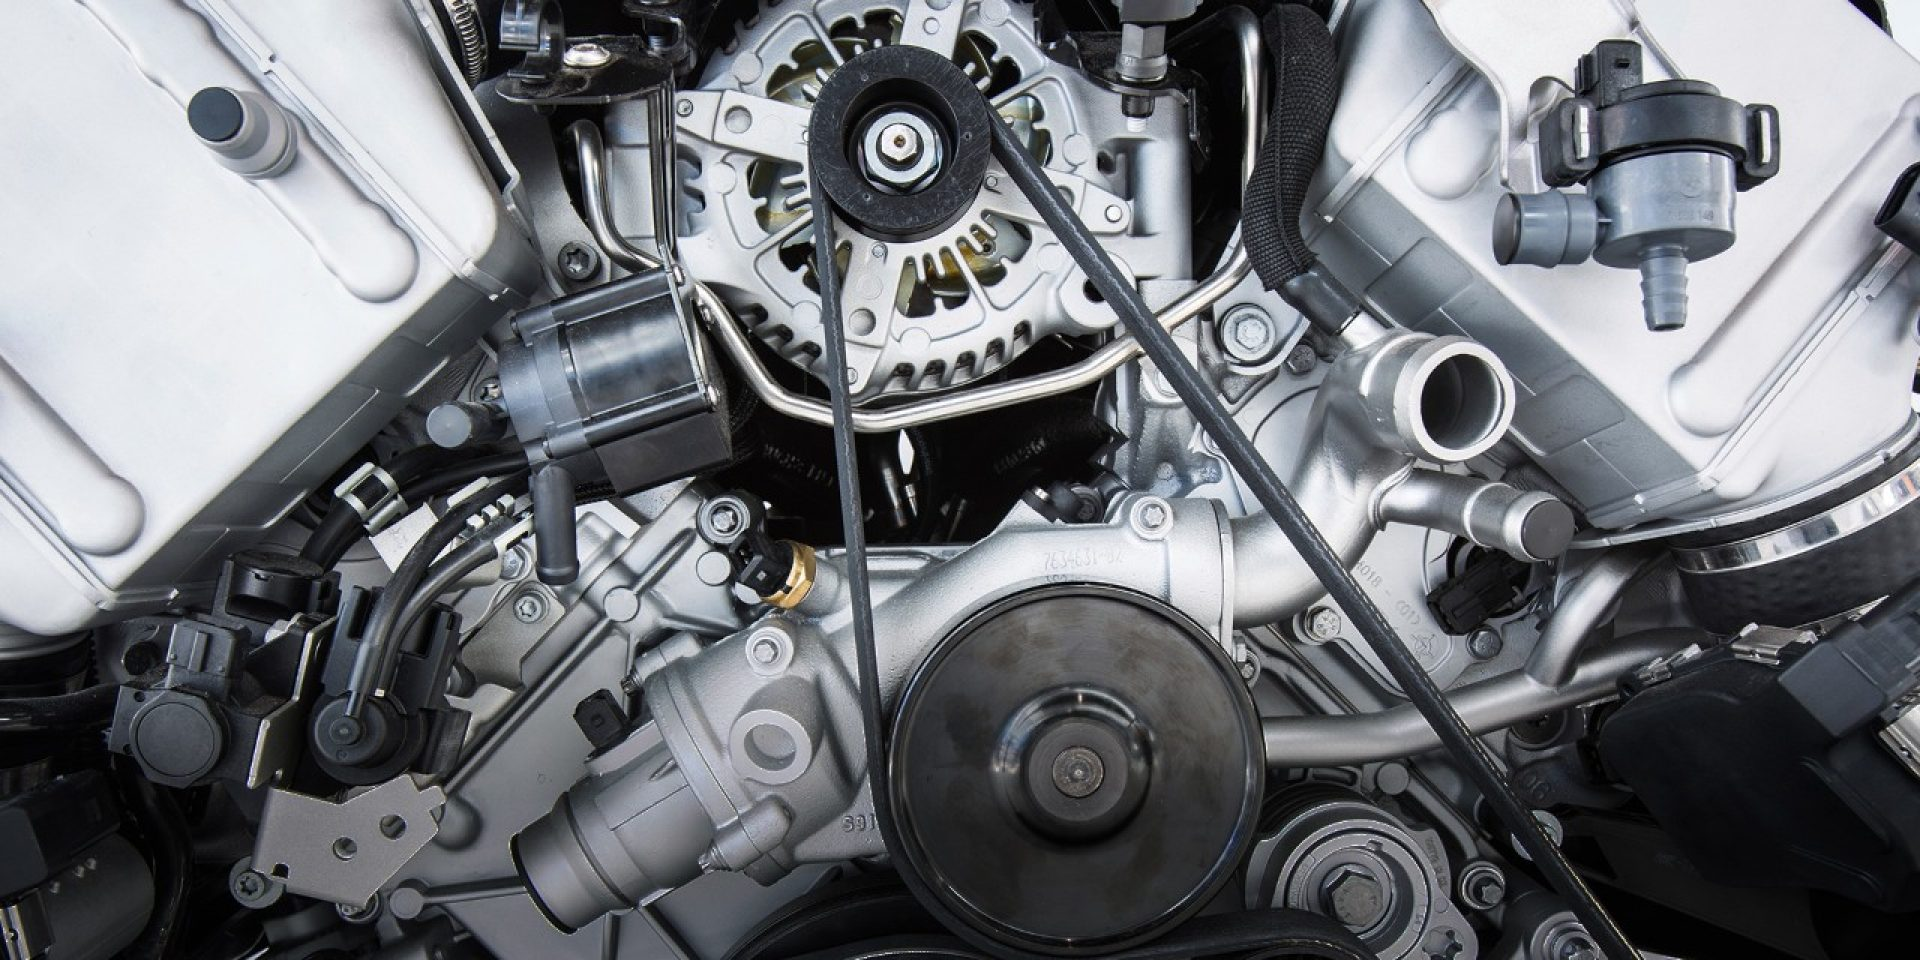 Mechanical and automotive engineering